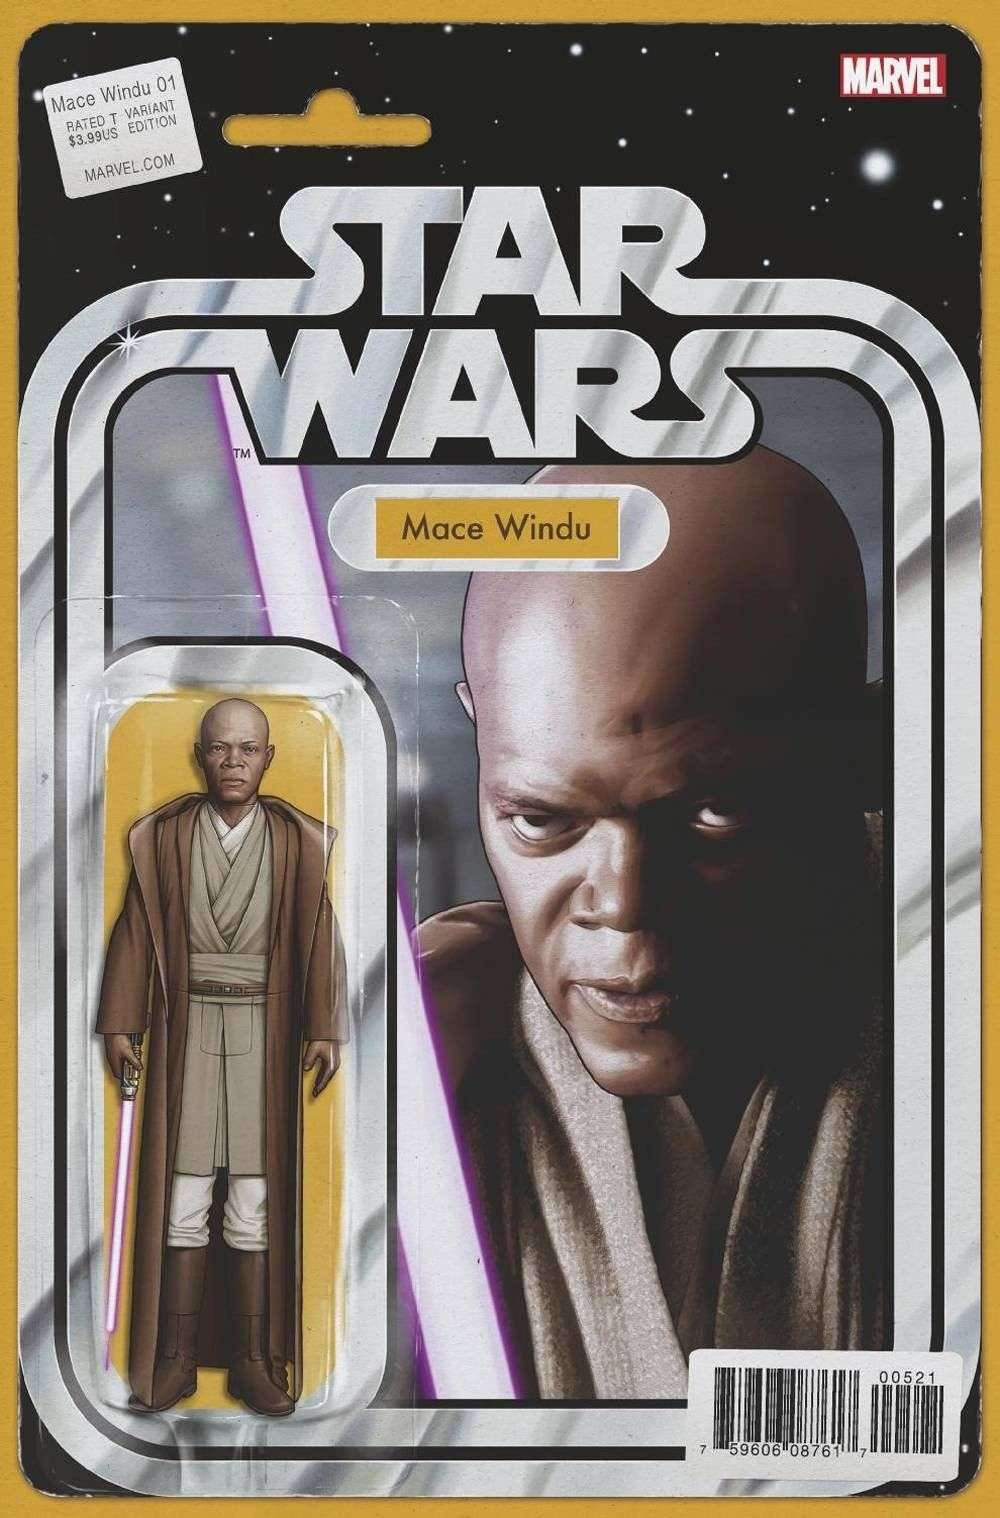 Mace Windu #5 Action figure variant